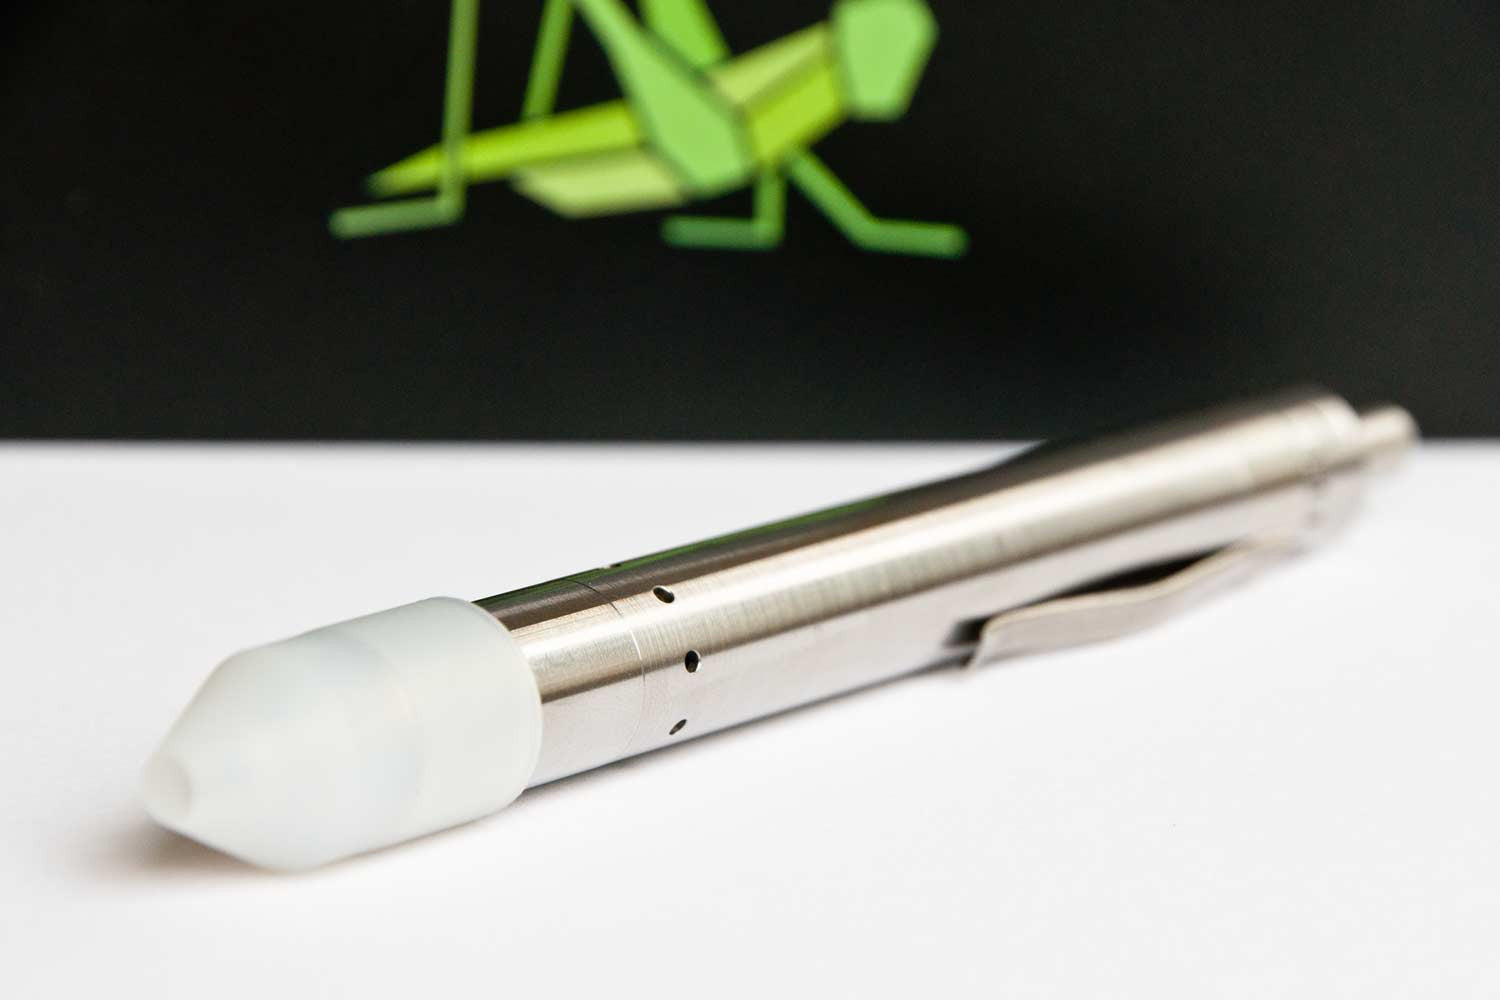 DISCONTINUED Grasshopper Vaporizer Silicone Mouthpiece